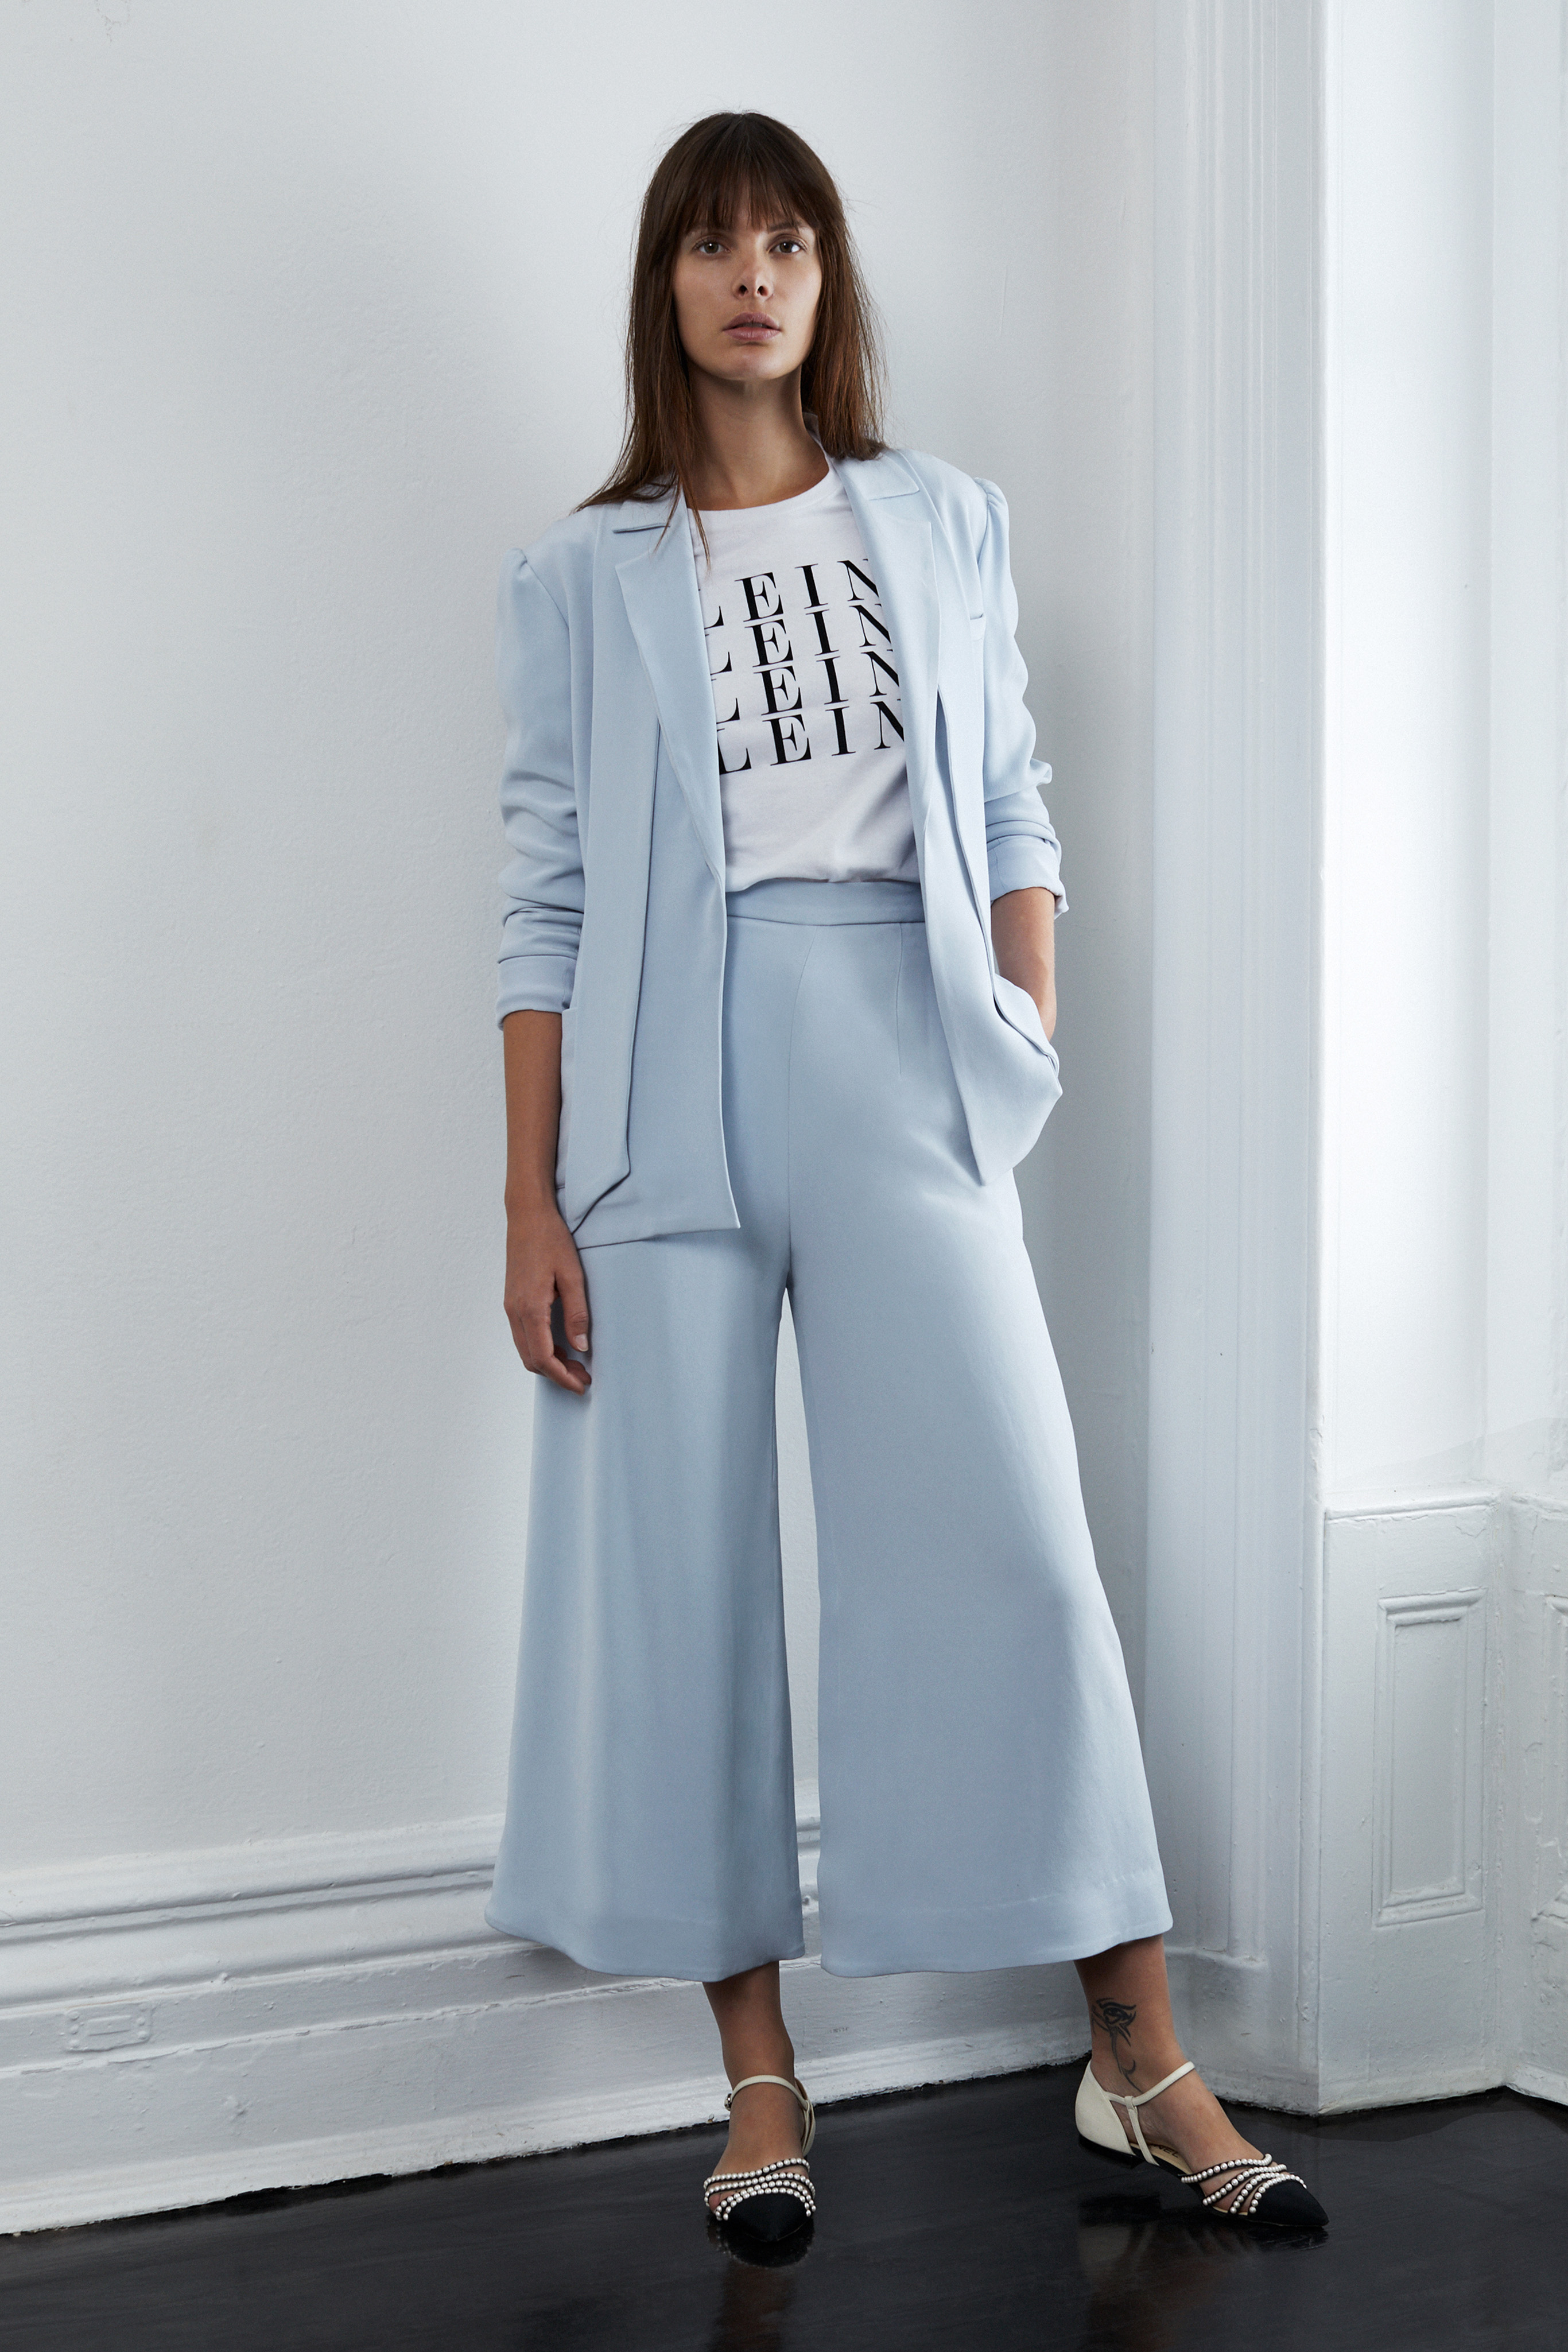 lein fall 2018 wedding dress blue two piece pantsuit trousers